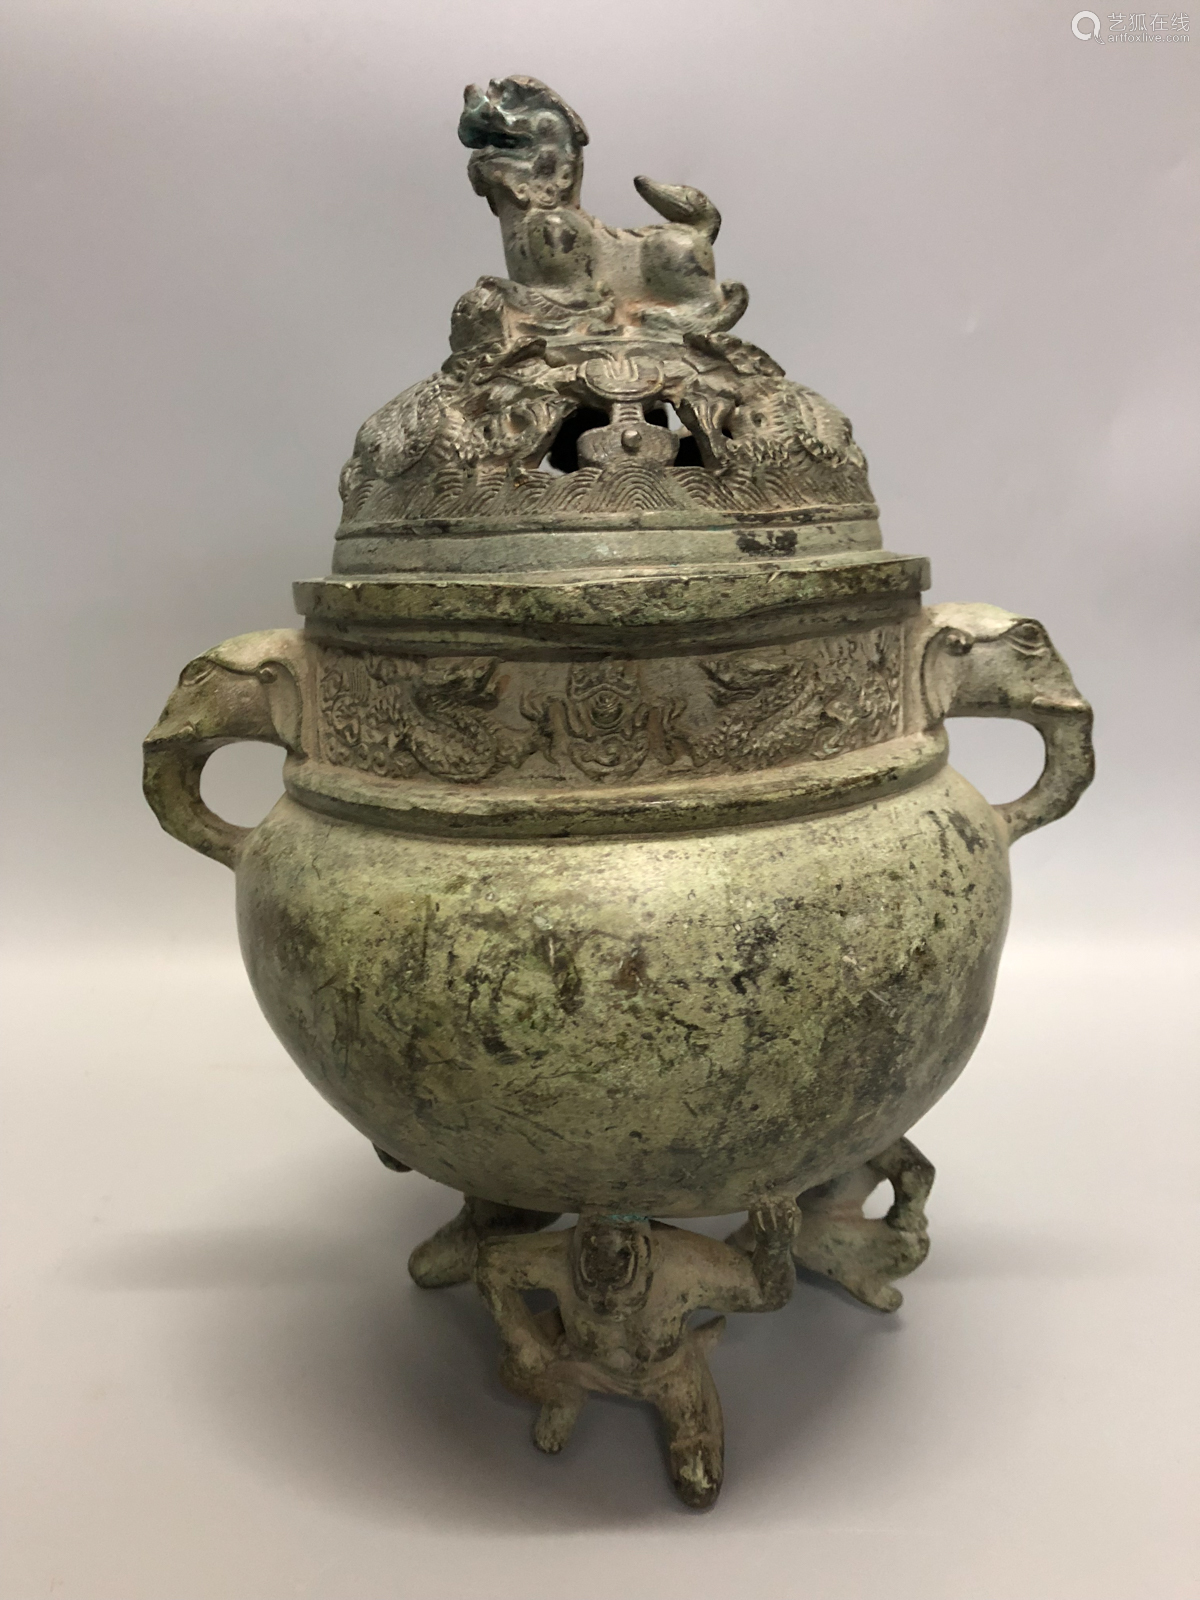 17TH-19TH CENTURY, A BRONZE CENSER, QING DYNASTY